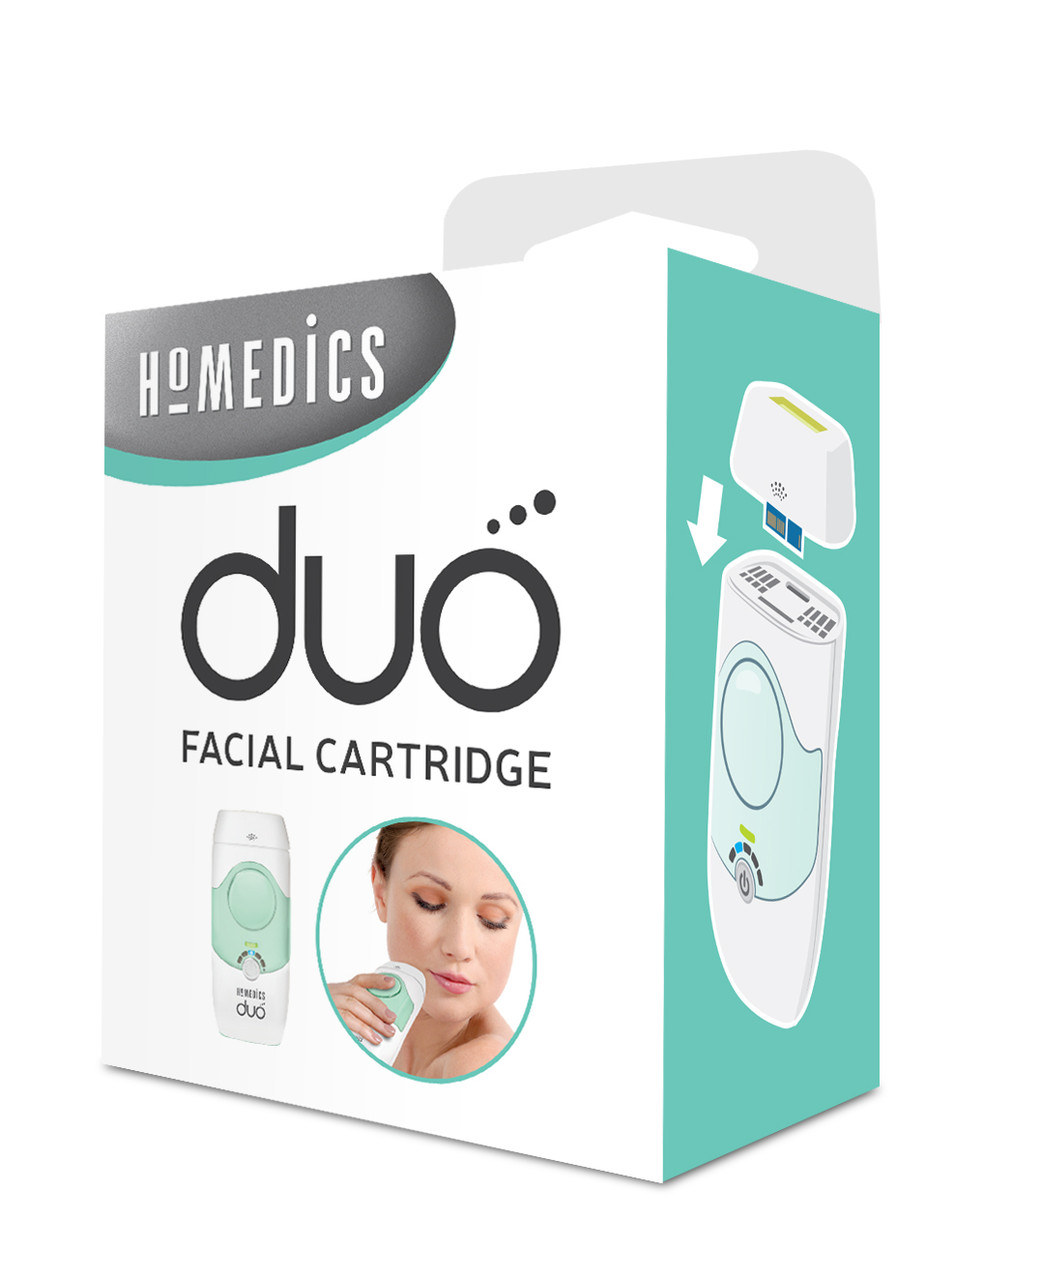 Картридж для лица AFT+IPL эпилятора HoMedics DUO Facial, 10000 вспышек